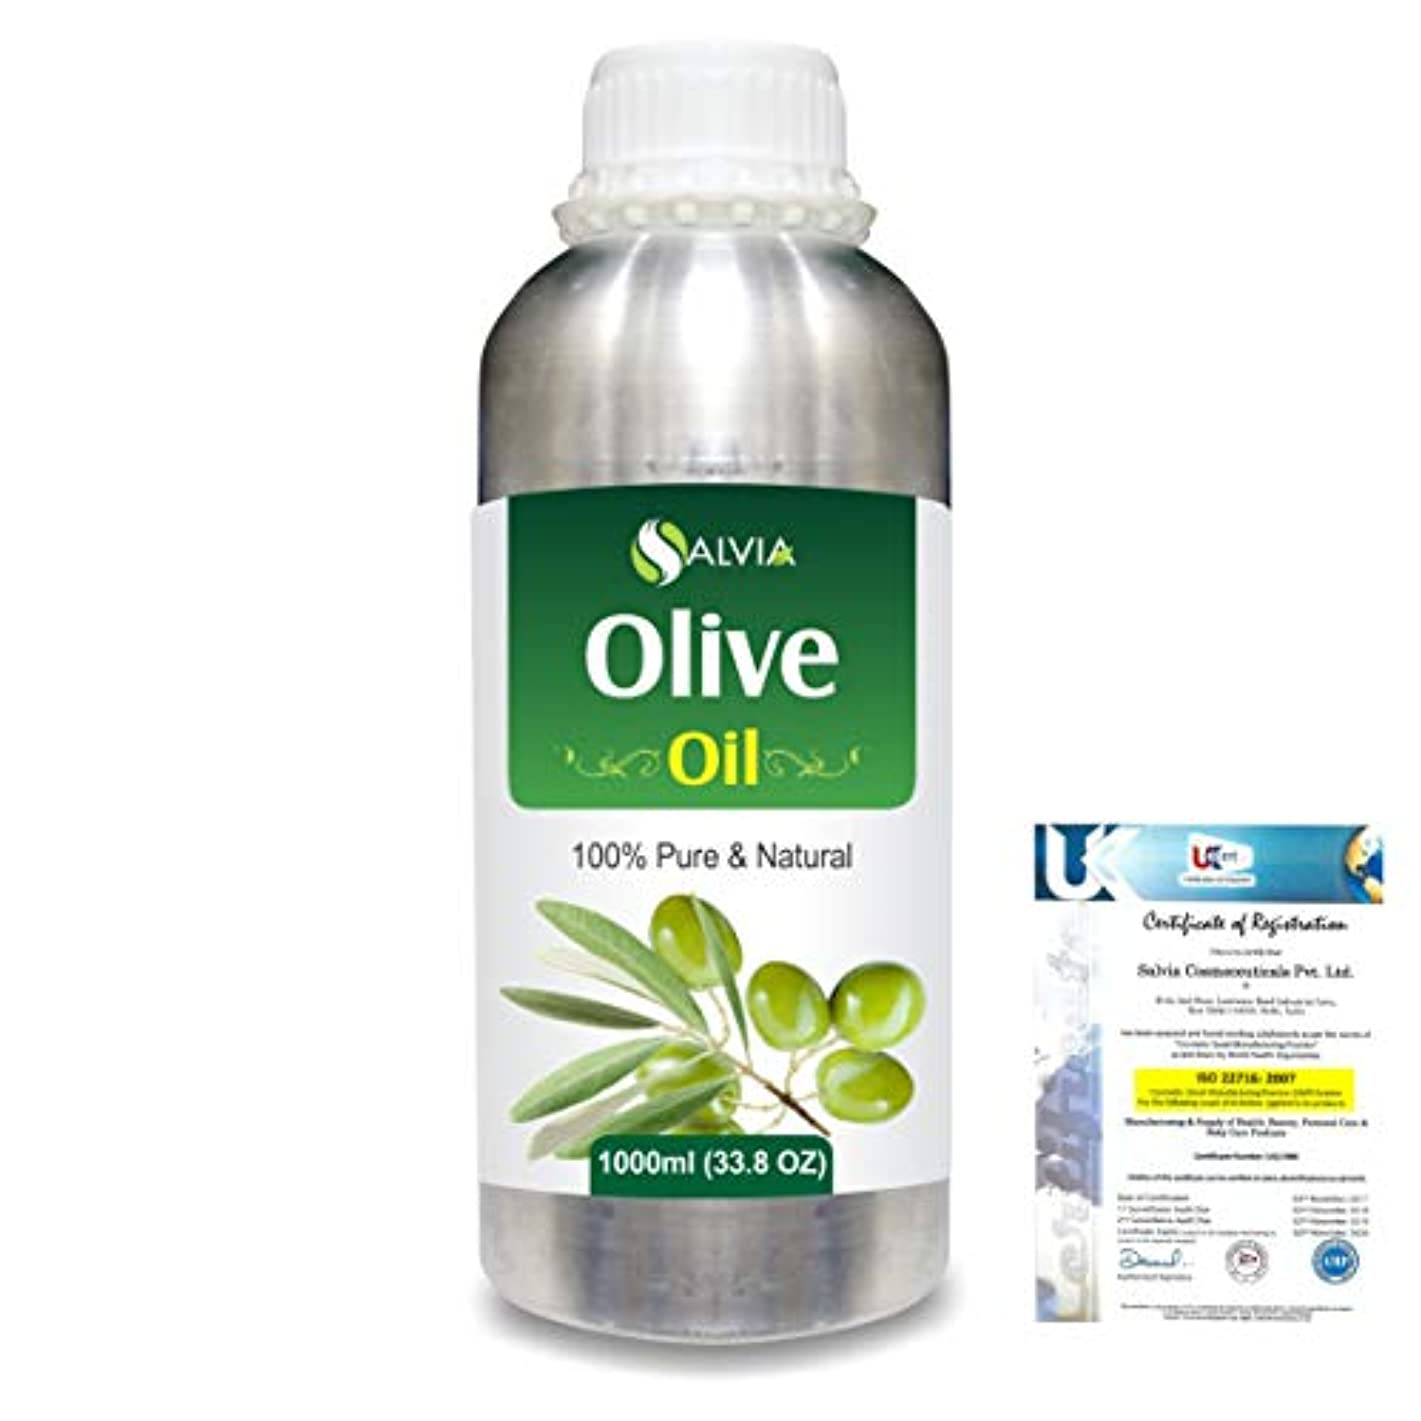 中にシャンパンスクラップブックOlive (Olea europea) Natural Pure Undiluted Uncut Carrier Oil 1000ml/33.8 fl.oz.